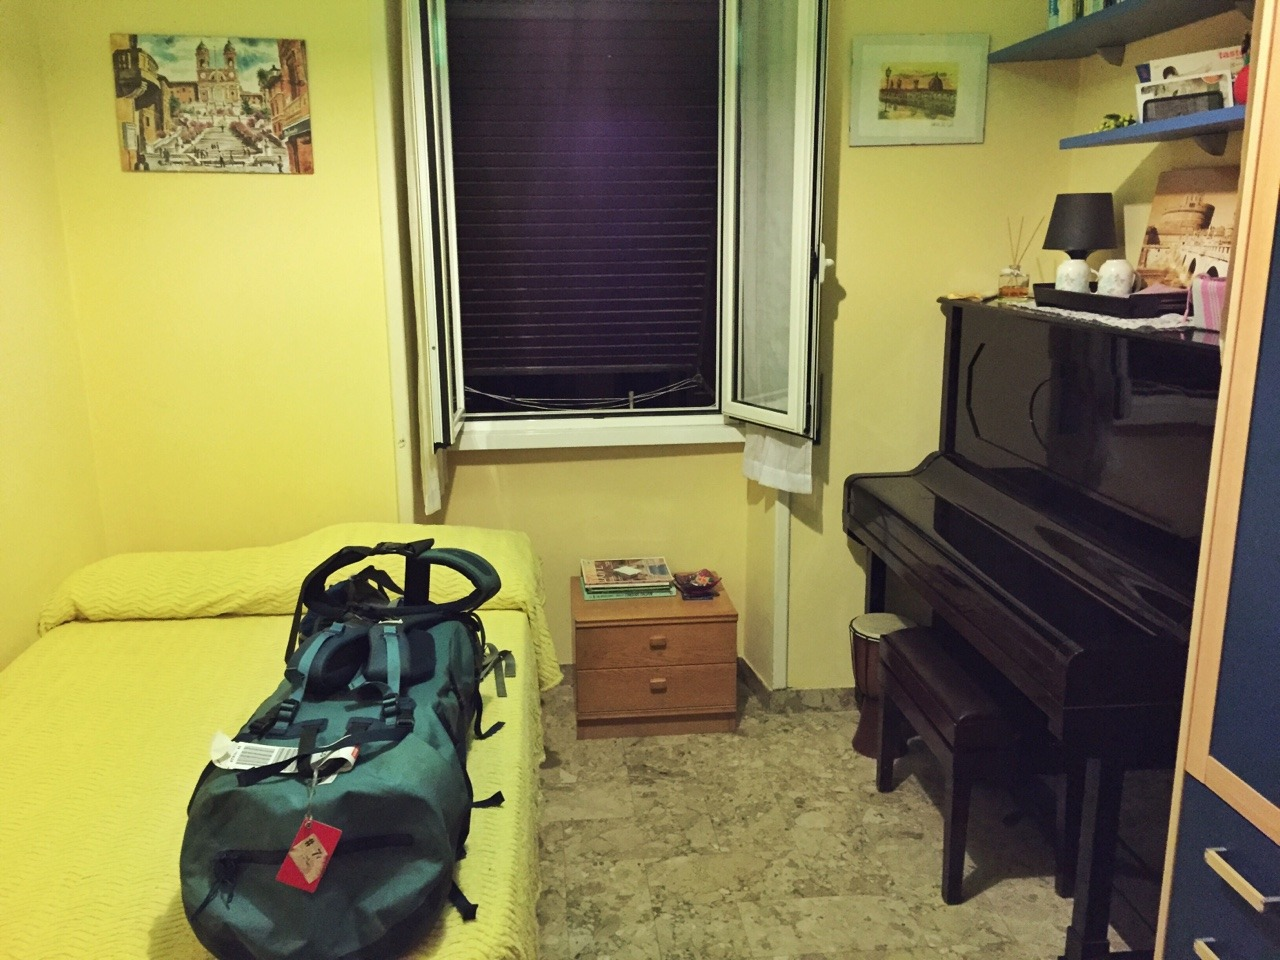 My room at Andrea's place… with a piano! However the piano badly needed a tuning and I was only around during hours when it would have woken the neighbourhood, so I didn't play it. Maybe next time!